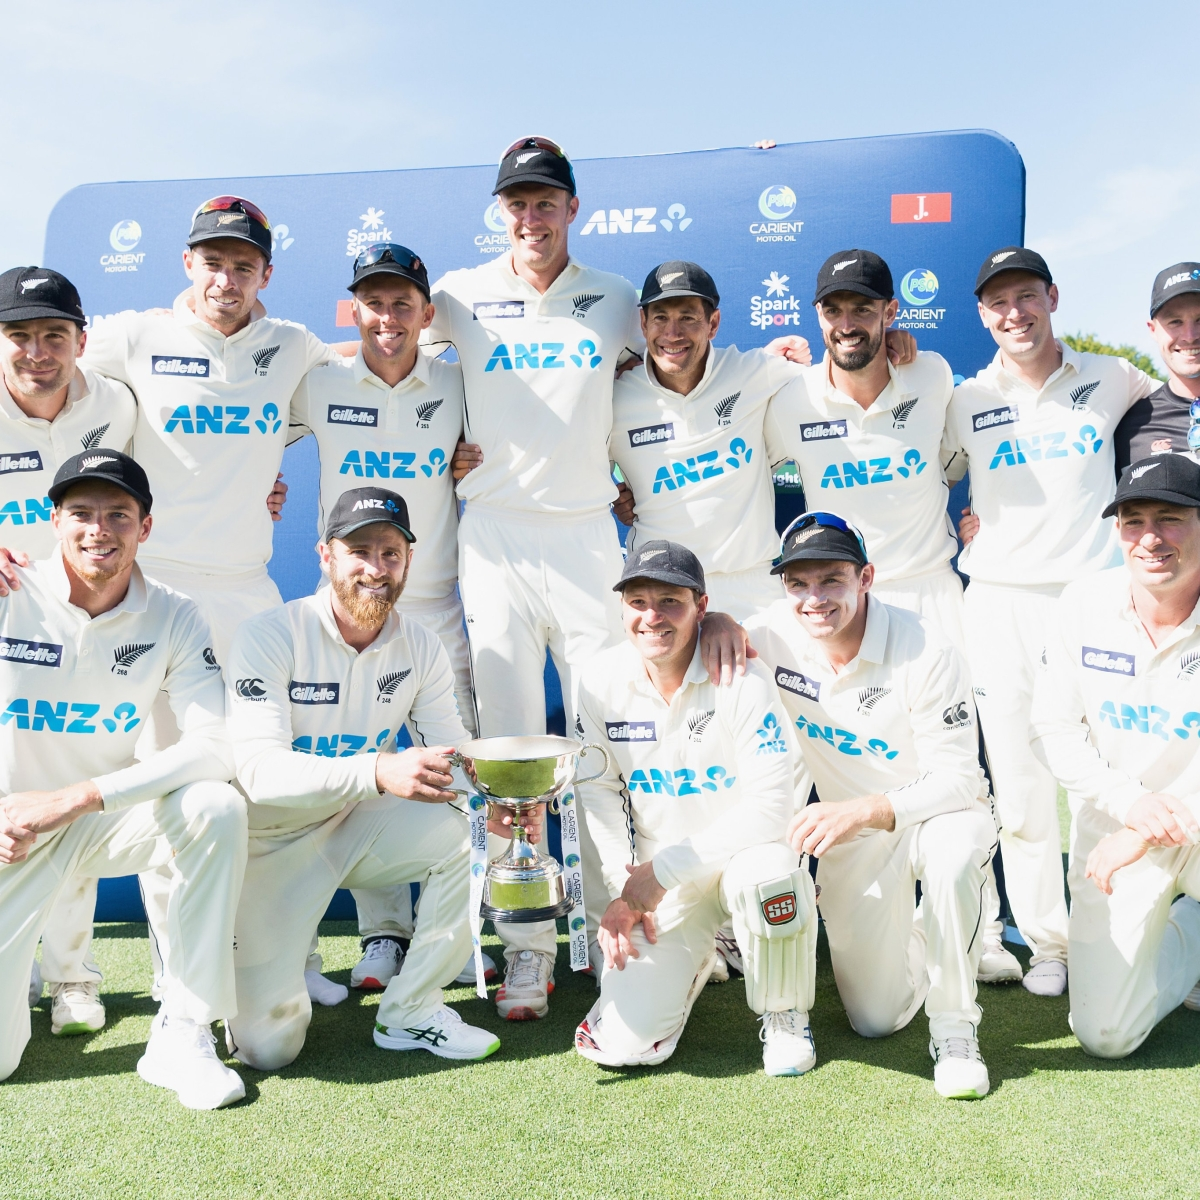 New Zealand becomes the first team to qualify for ICC World Test Championship final: Who will be the second side?